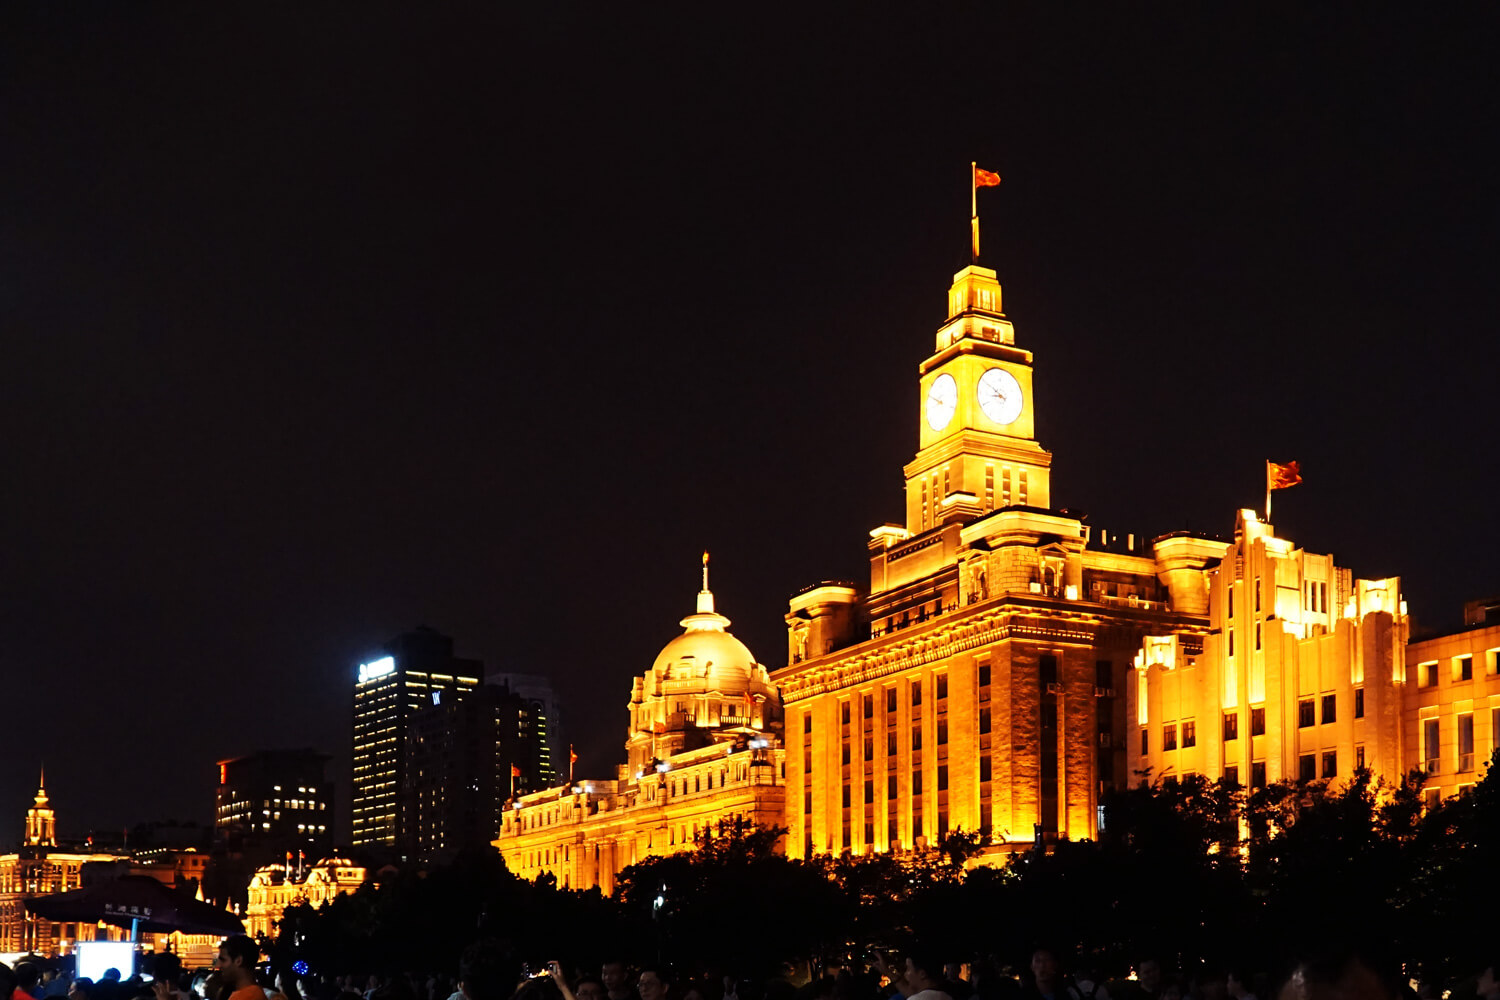 Day 4 - Shanghai Trip - The Bund